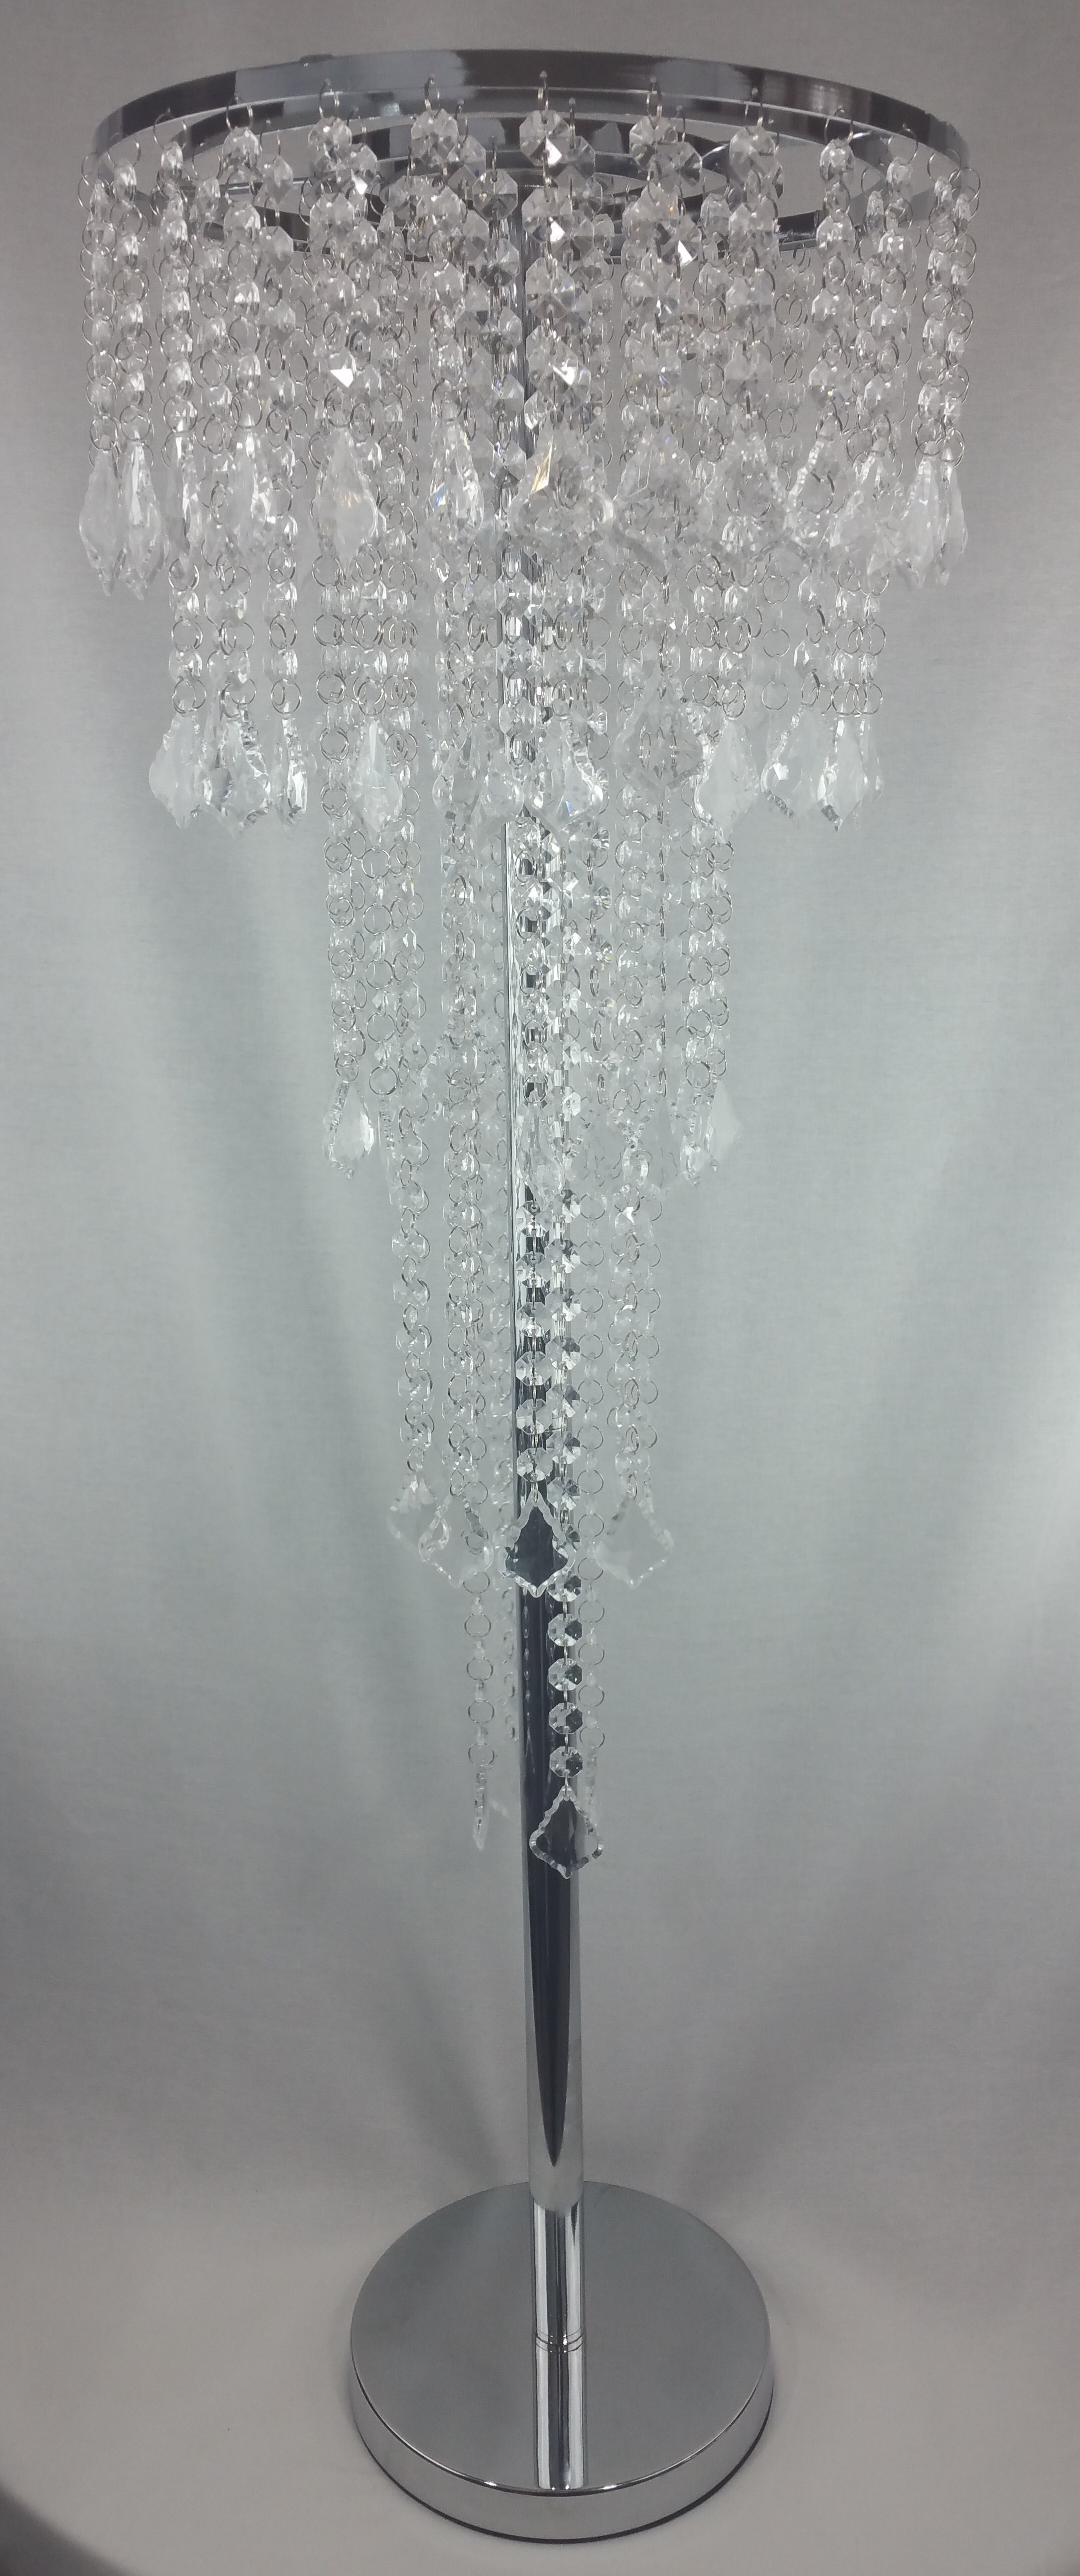 Silver crystal droplet centrepiece. 94cm tall. From £25 each.